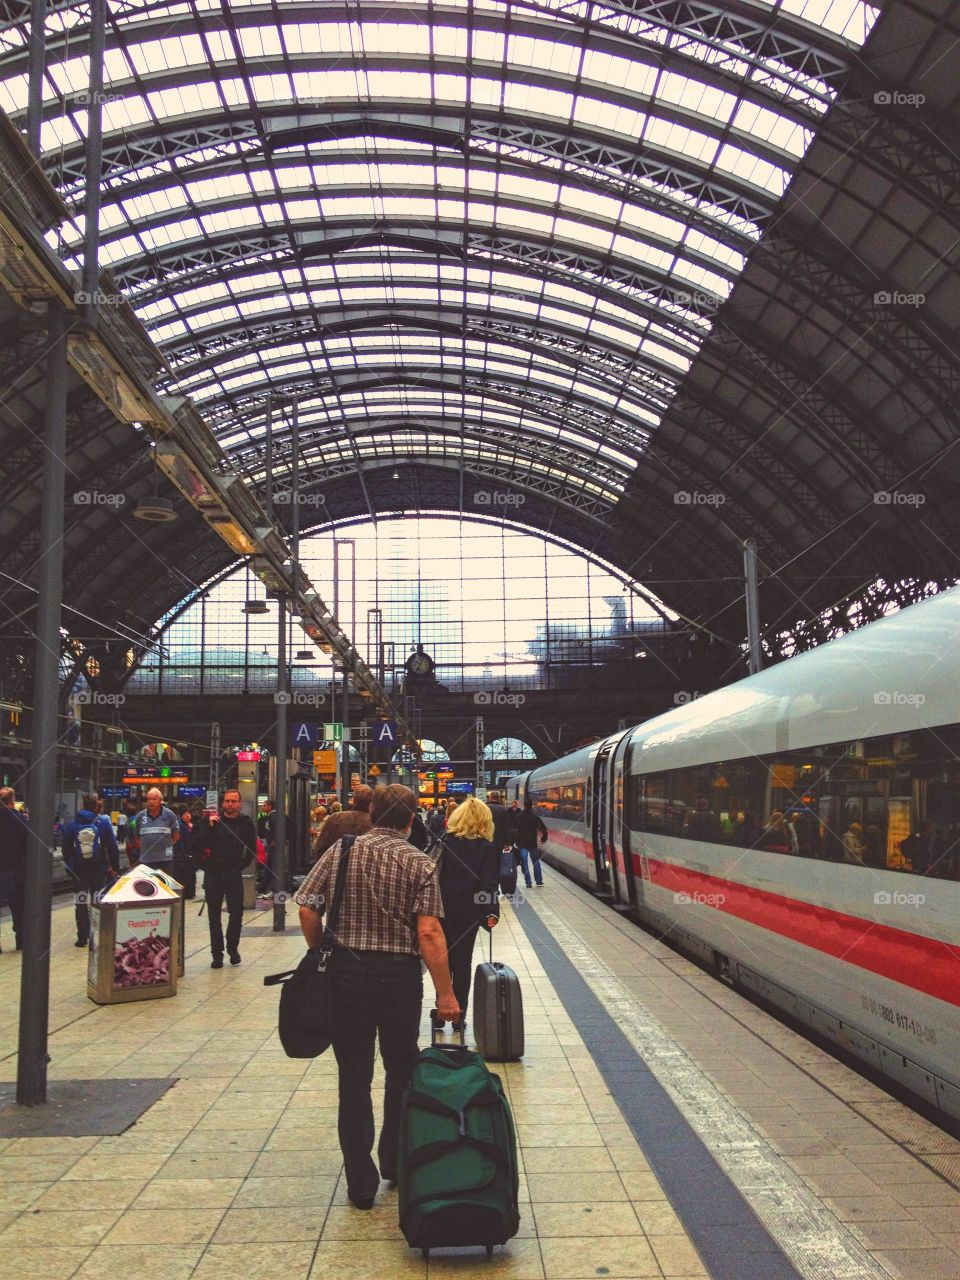 Some train station in Germany